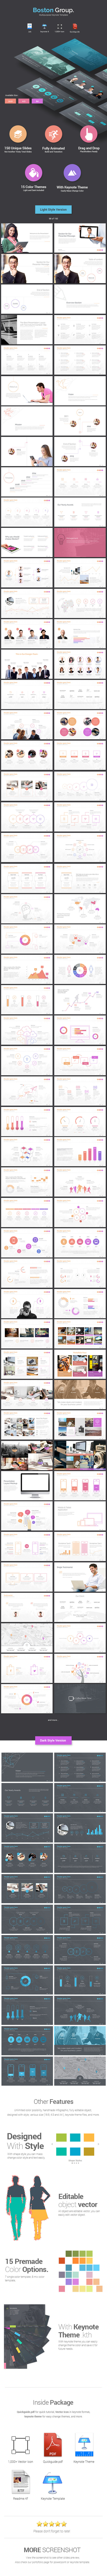 Boston - Creative Keynote Template - Creative Keynote Templates